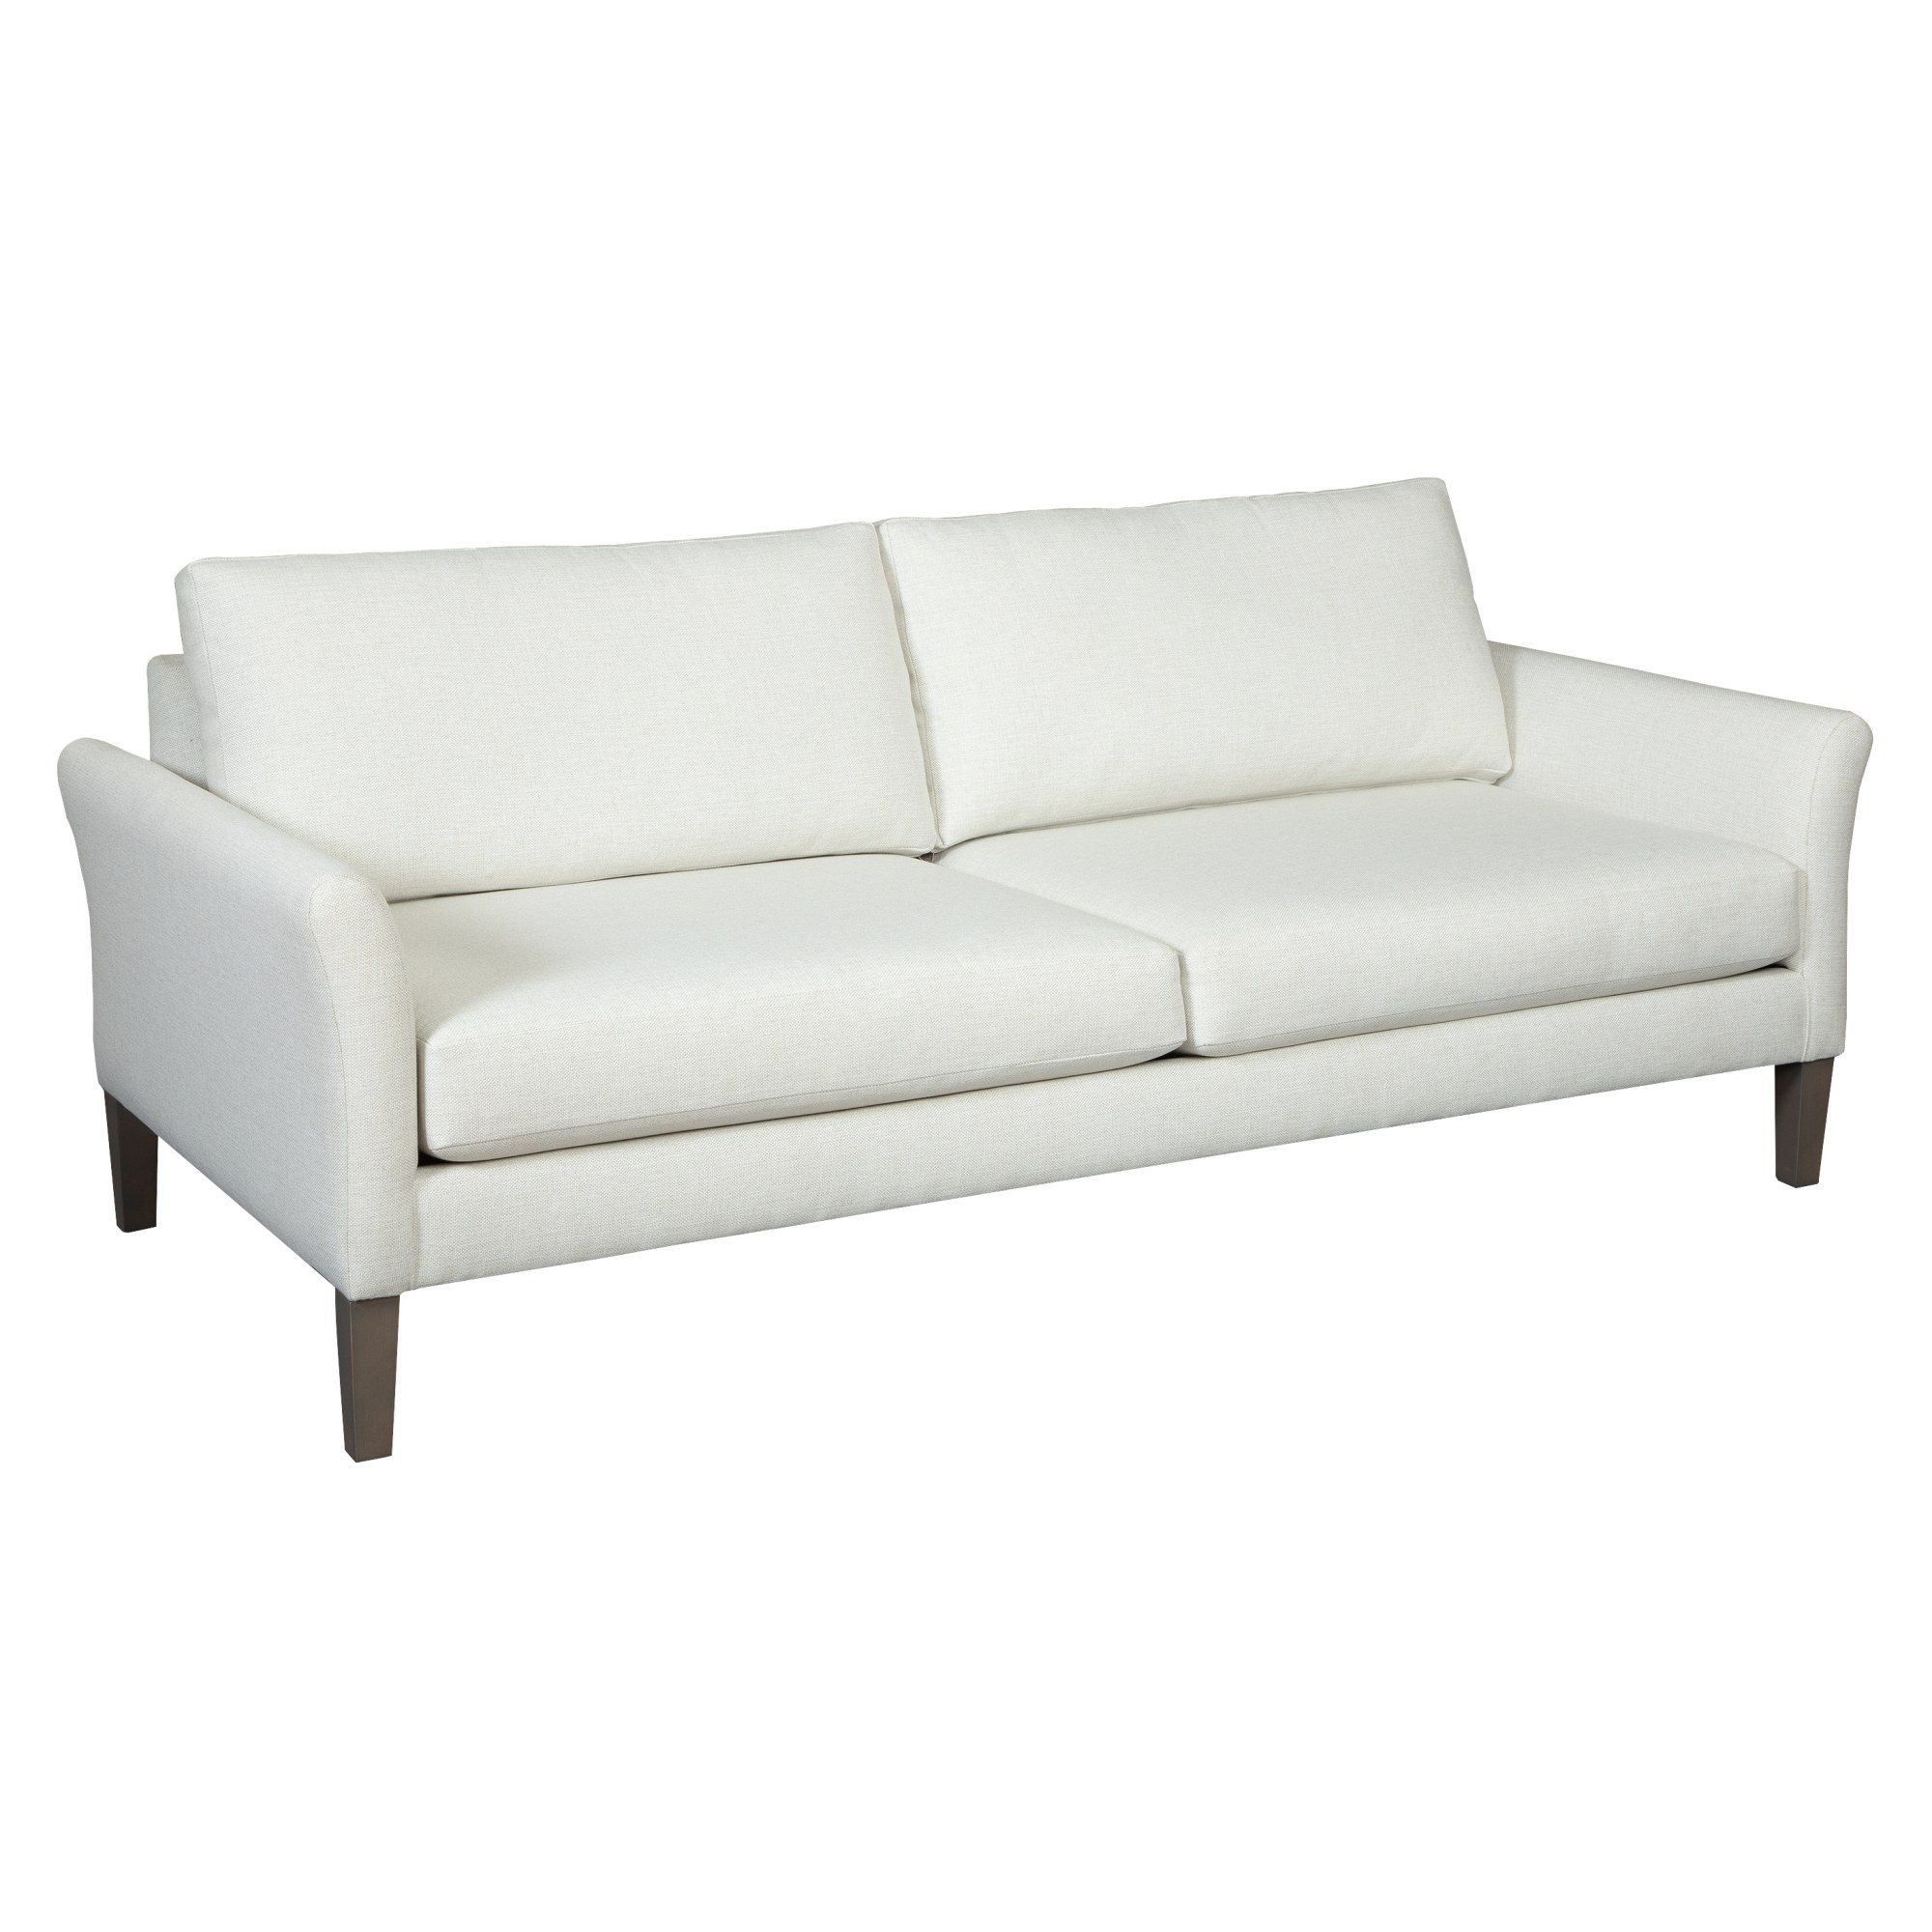 """Image for 174375 Metro 75"""" Flared Arm Sofa from Hekman Official Website"""